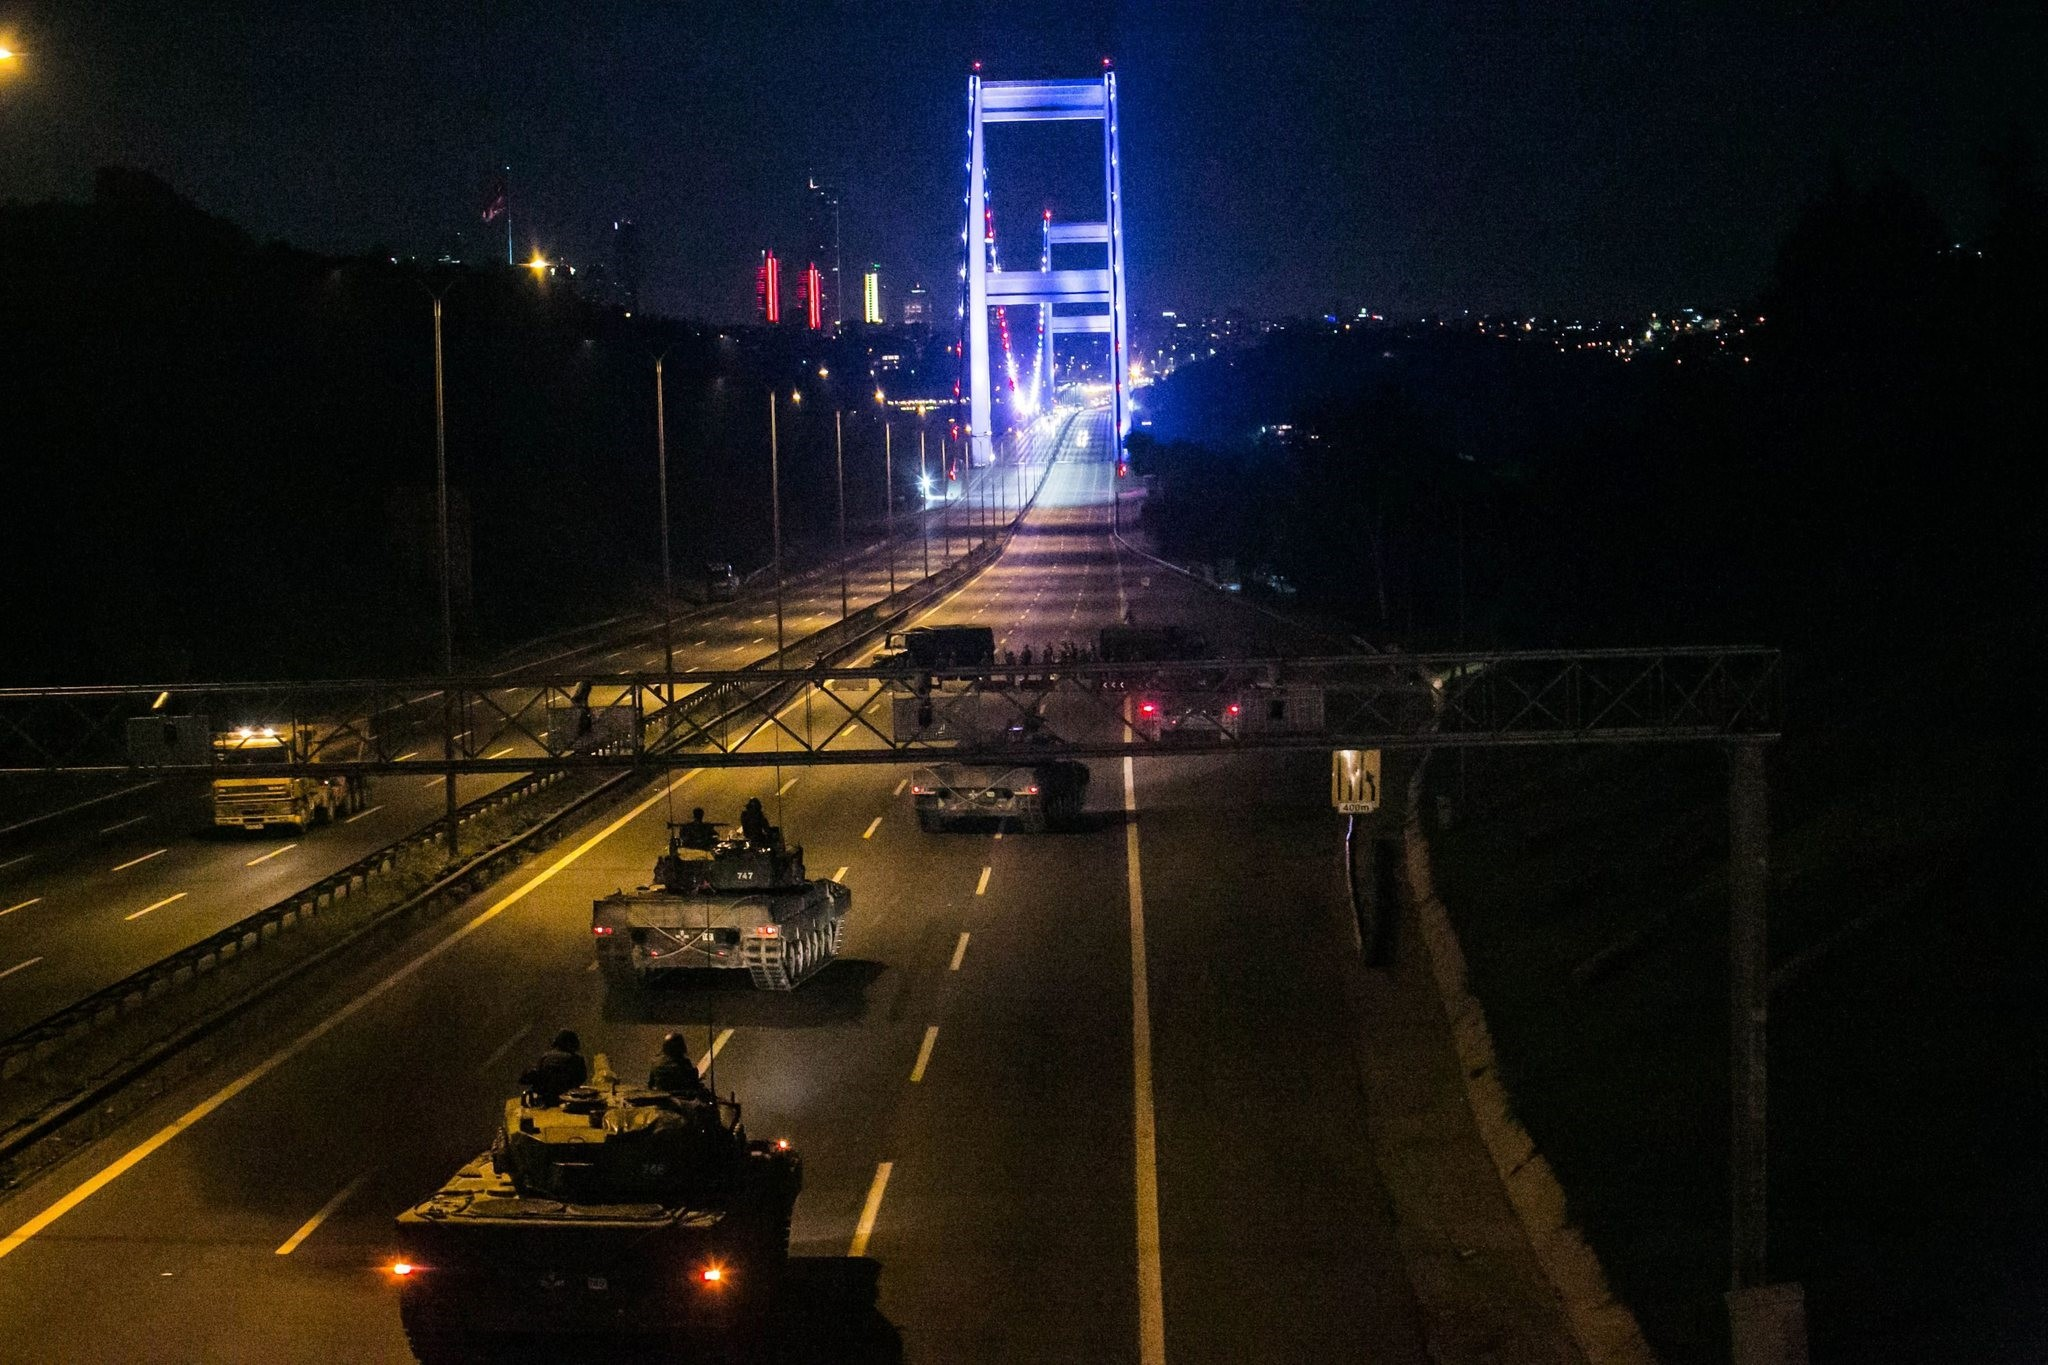 Coup soldiers enter the Fatih Sultan Mehmet Bridge in Istanbul on July 16, 2016.